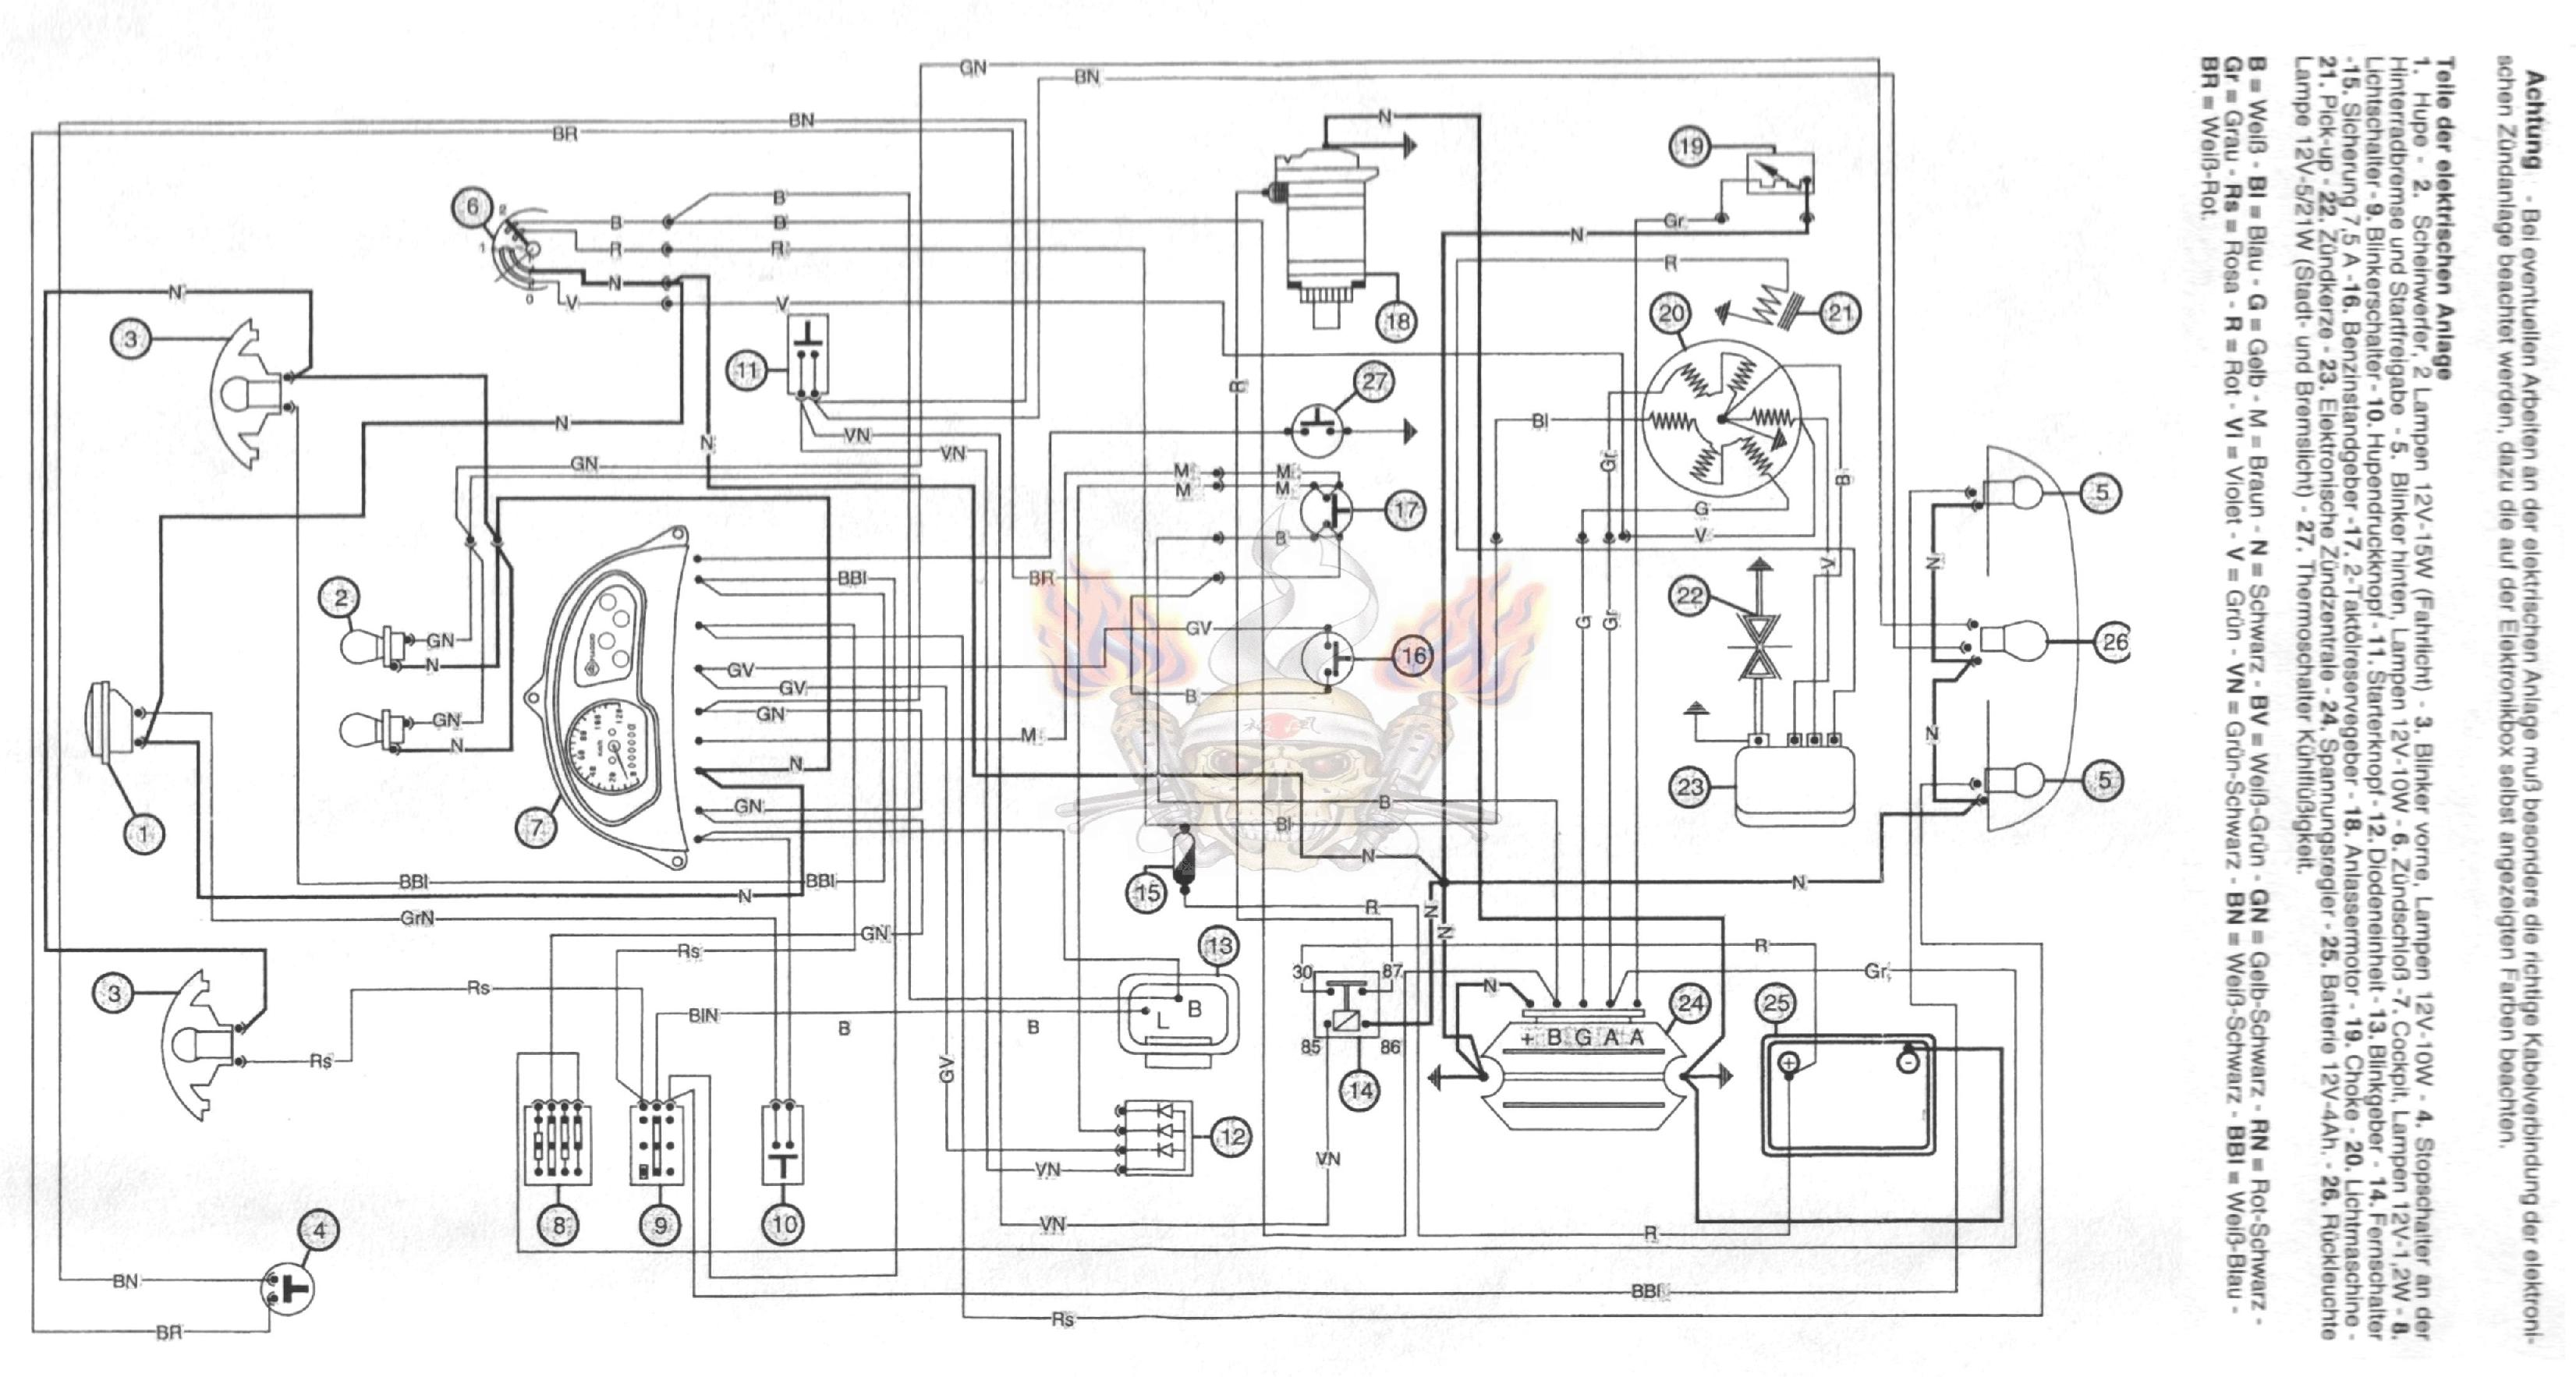 kymco 125 wiring diagram asus wiring diagram wiring. Black Bedroom Furniture Sets. Home Design Ideas